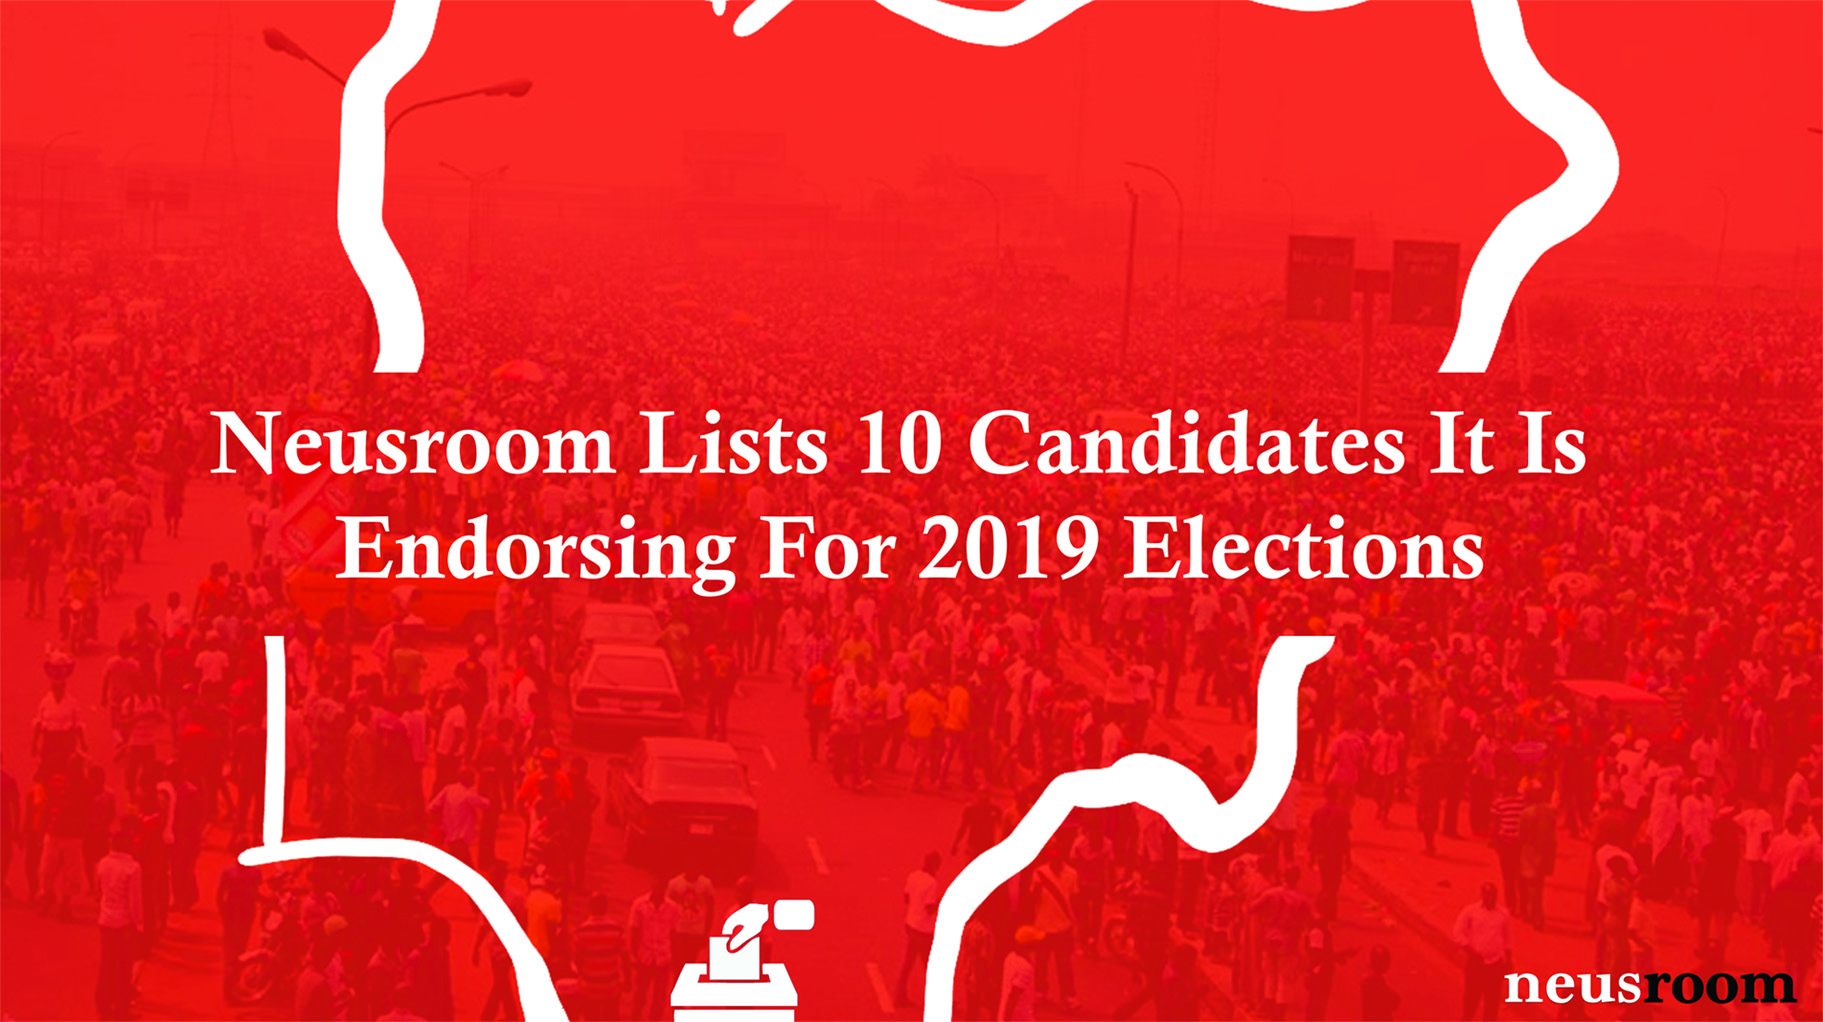 Neusroom Lists 10 Candidates It Is Endorsing For 2019 Elections